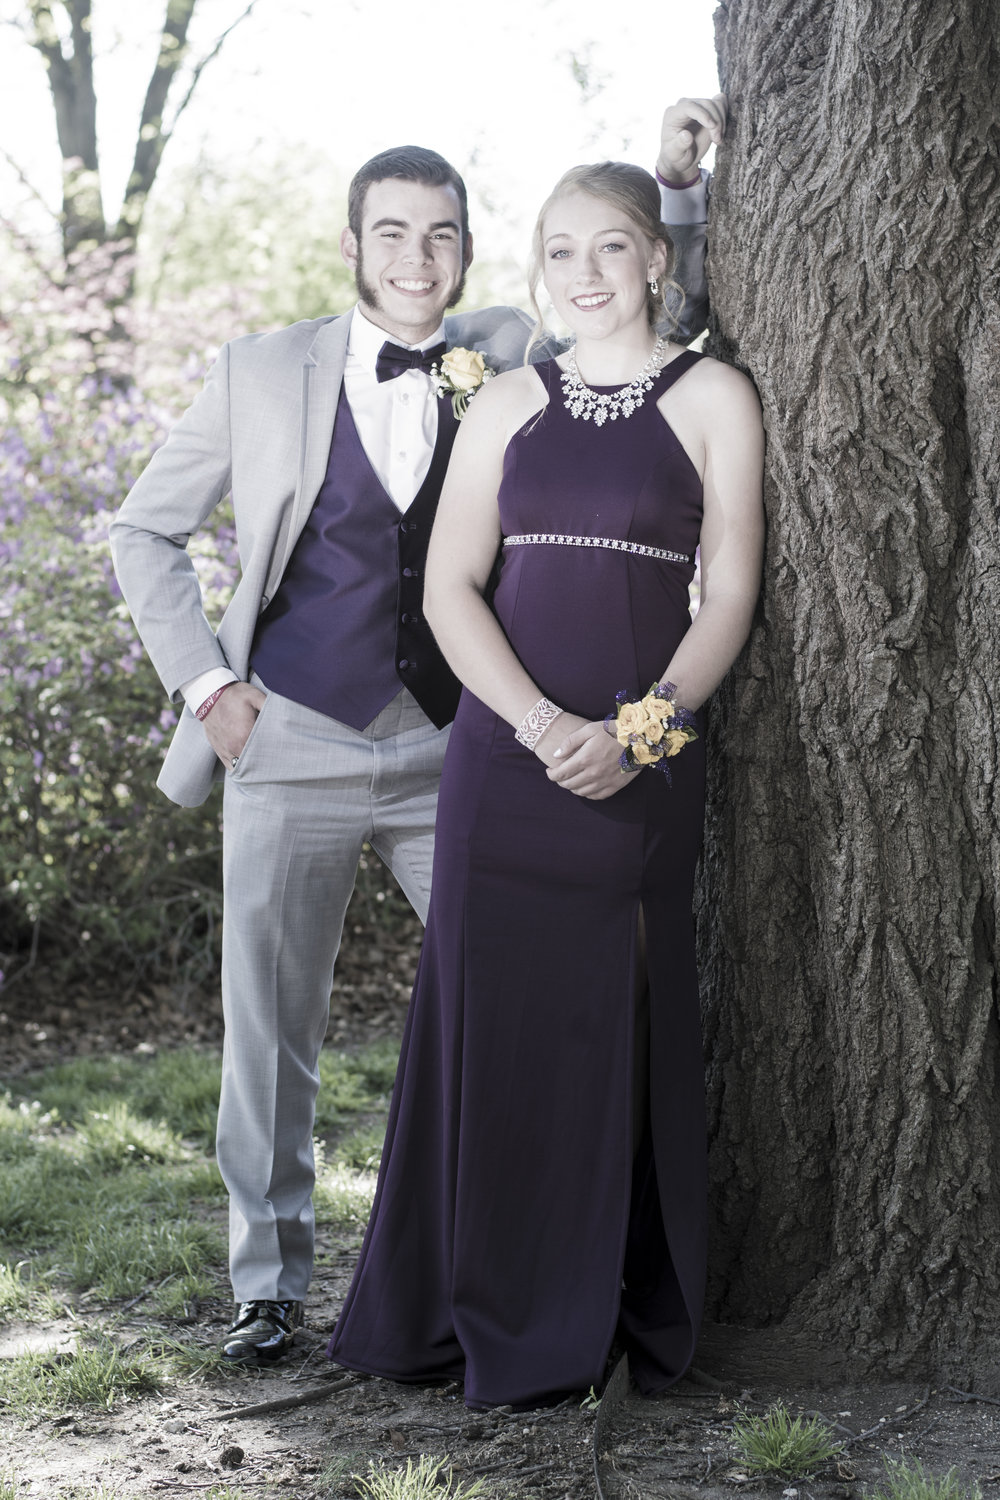 ethan-and-ally-prom-88-of-113_40126032180_o.jpg